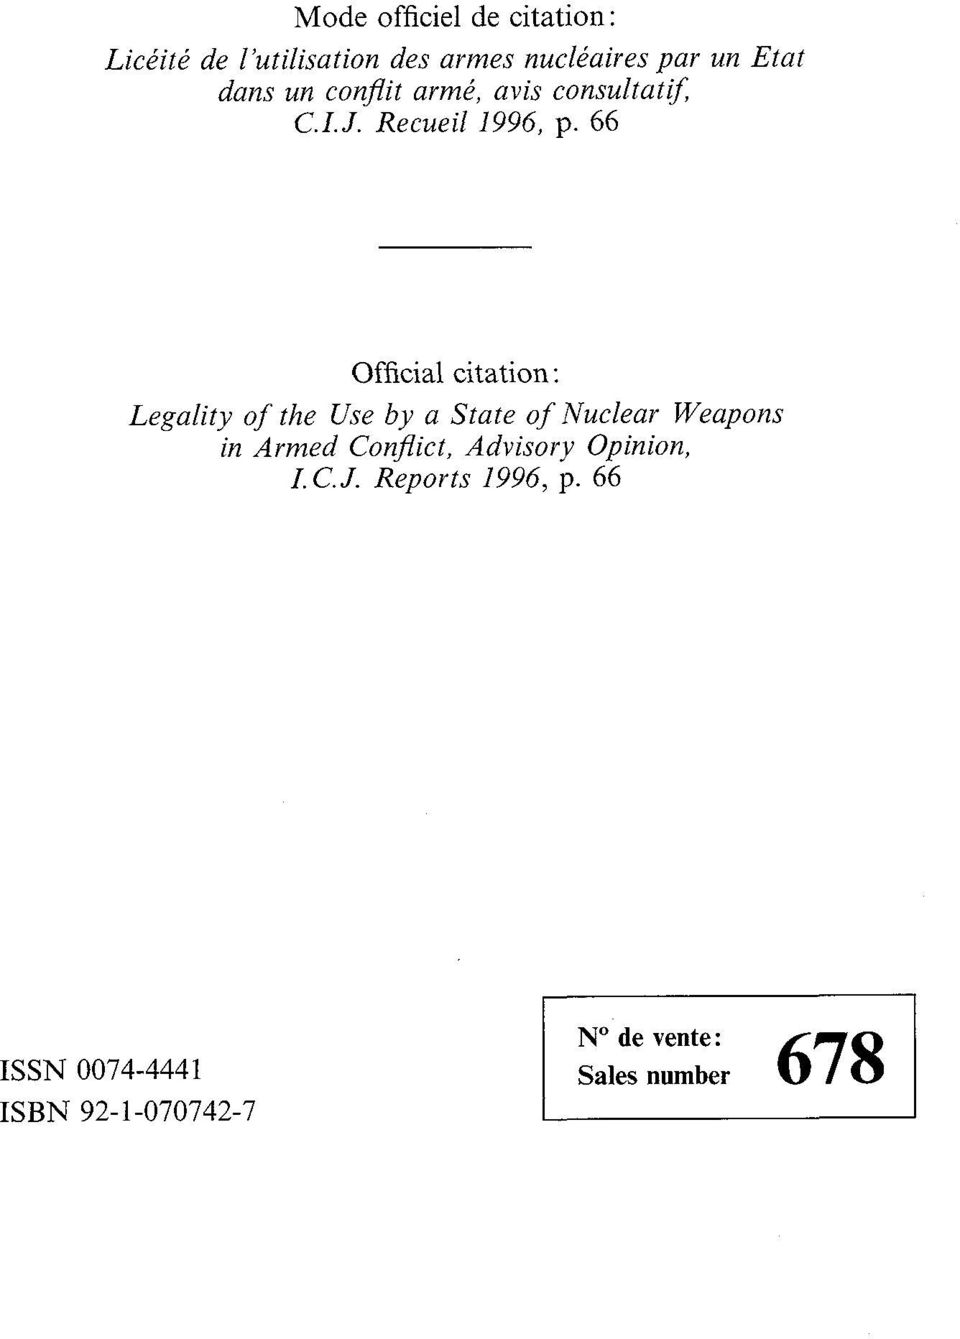 66 Officia1 citation : Legality of the Use by a State of Nuclear Weapons in Armed